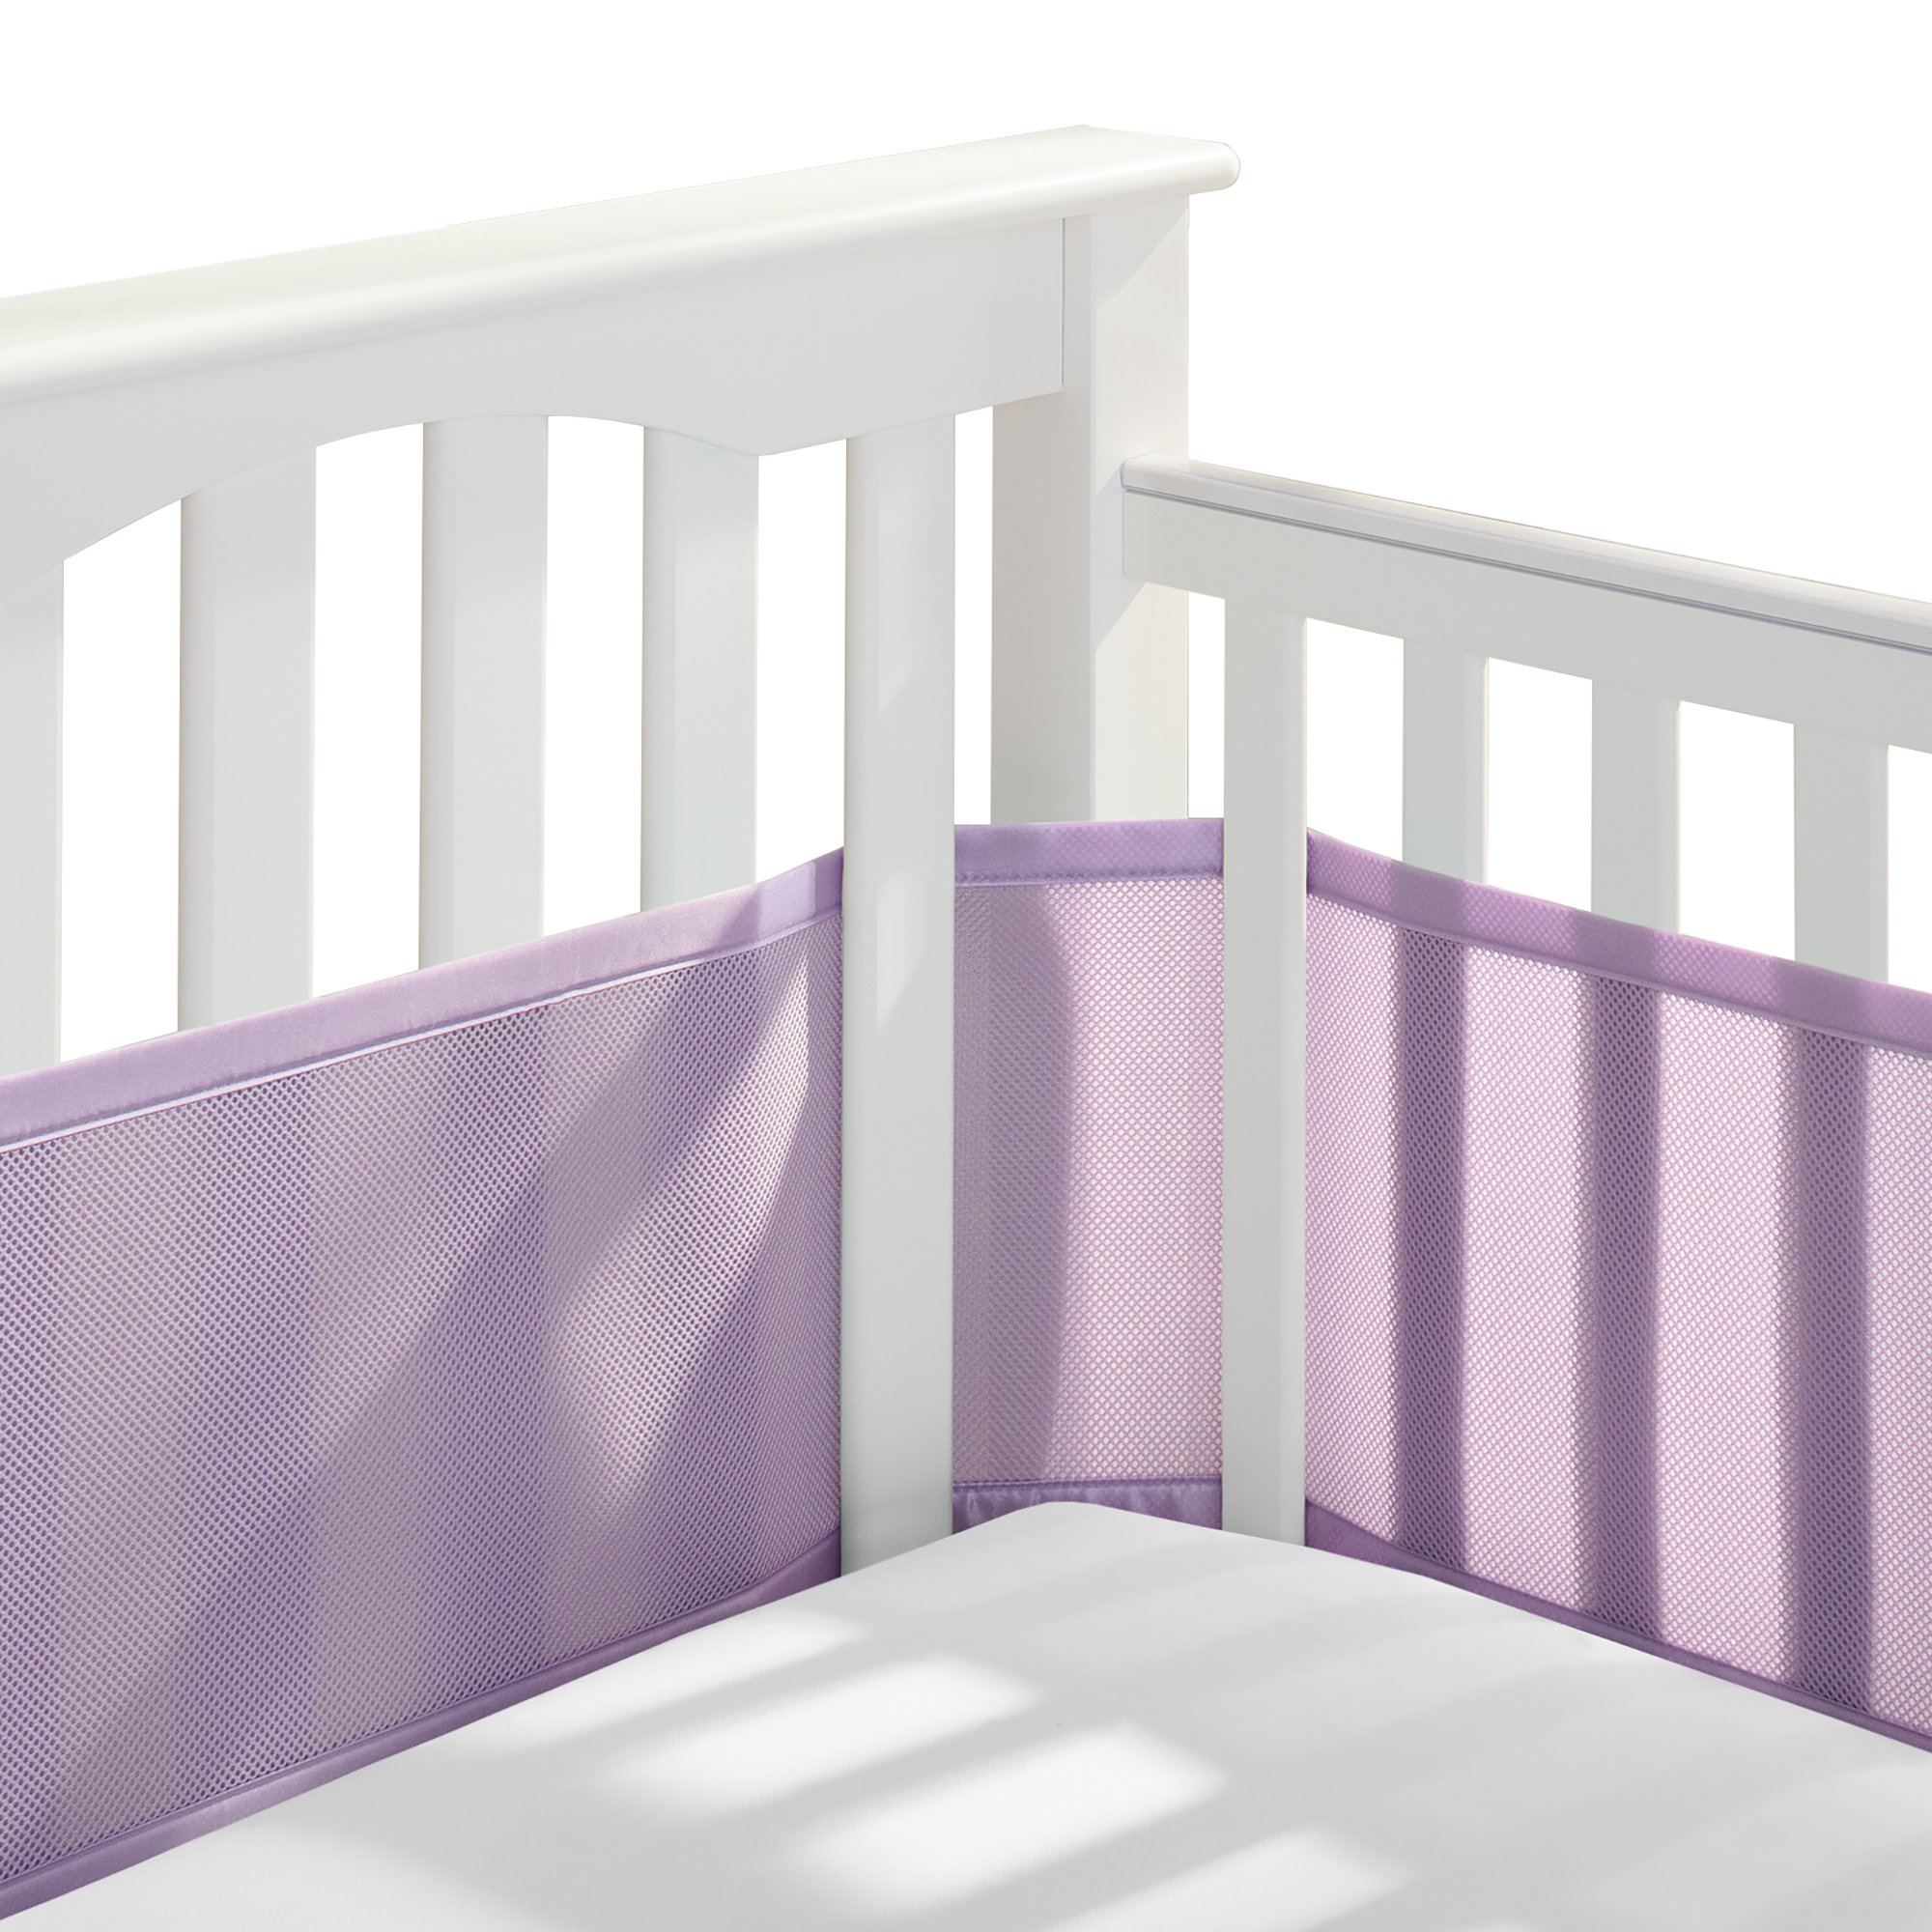 BreathableBaby | Breathable Mesh Crib Liner | Patented Design | Doctor Endorsed | Helps Prevent Arms and Legs from Getting Stuck Between Crib Slats | Independently Tested for Safety | Lavender